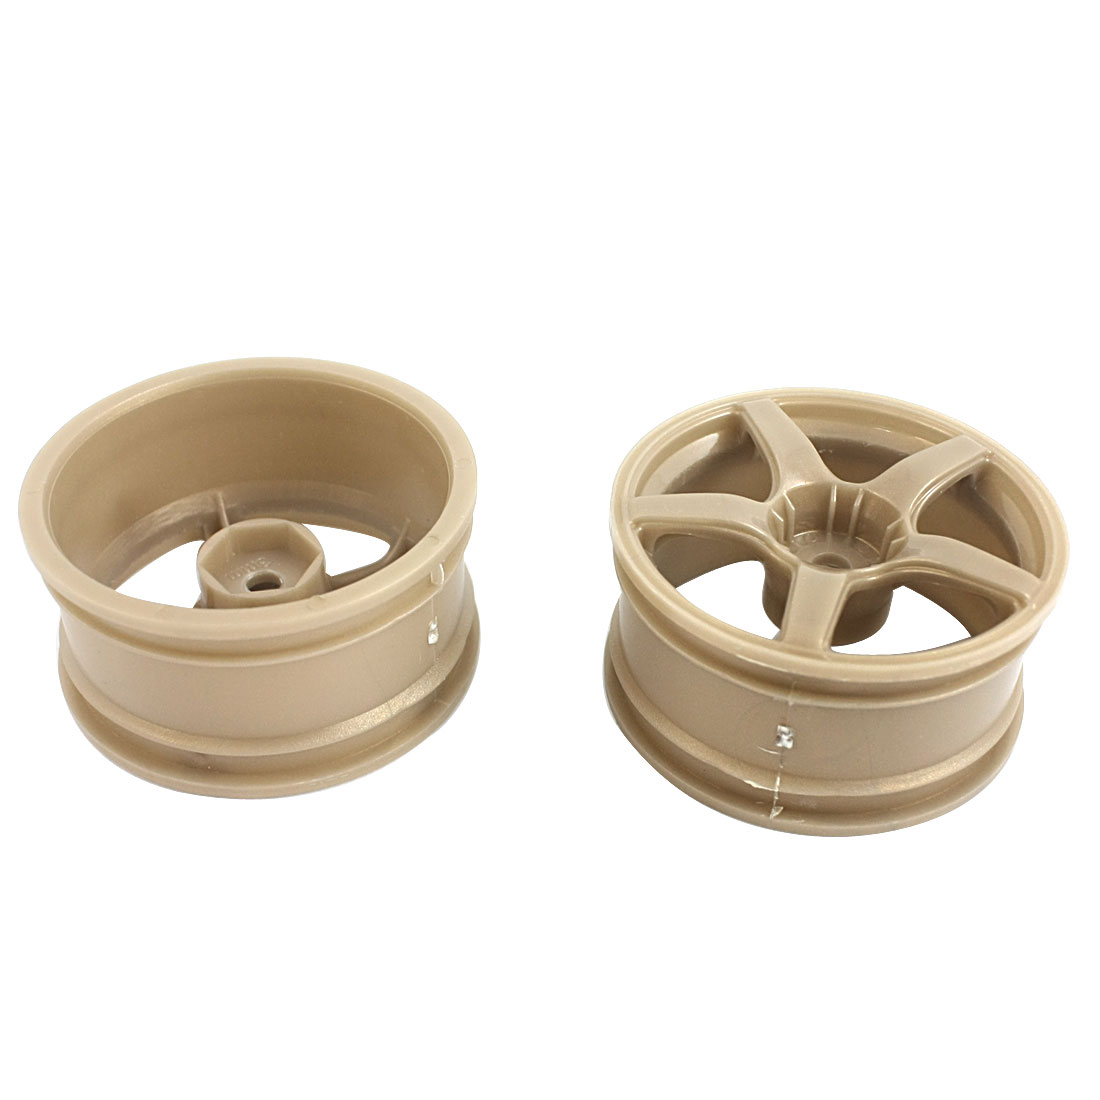 2pcs 1:10 RC Model Flat Racing Car Truck Plastic Drift Wheel Rim 52mm Dia